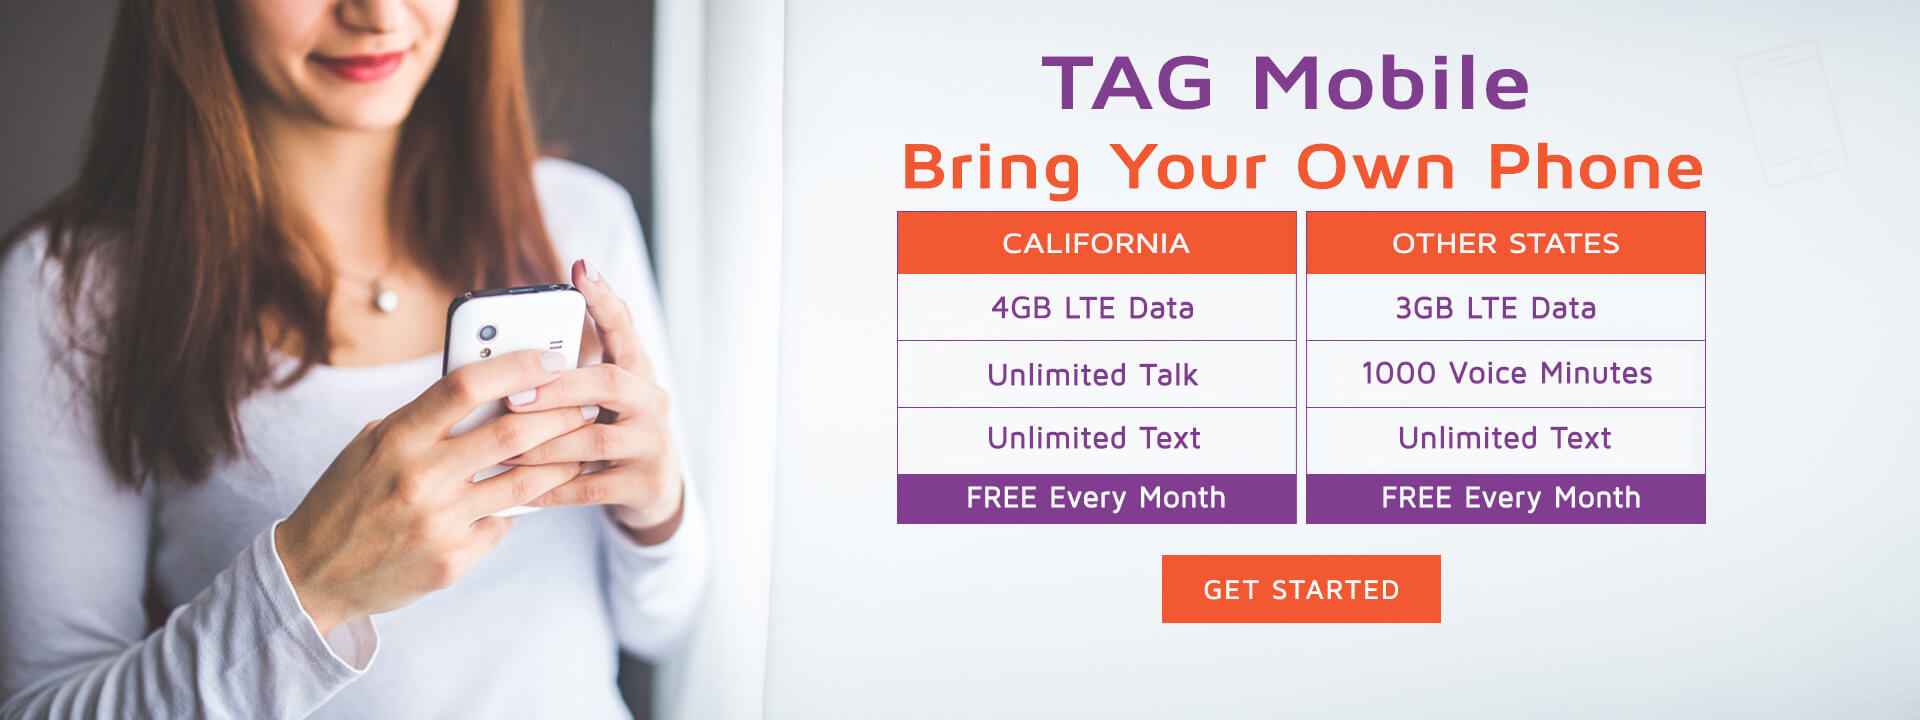 Bring Your Own Phone, BYOP plan California and Other State